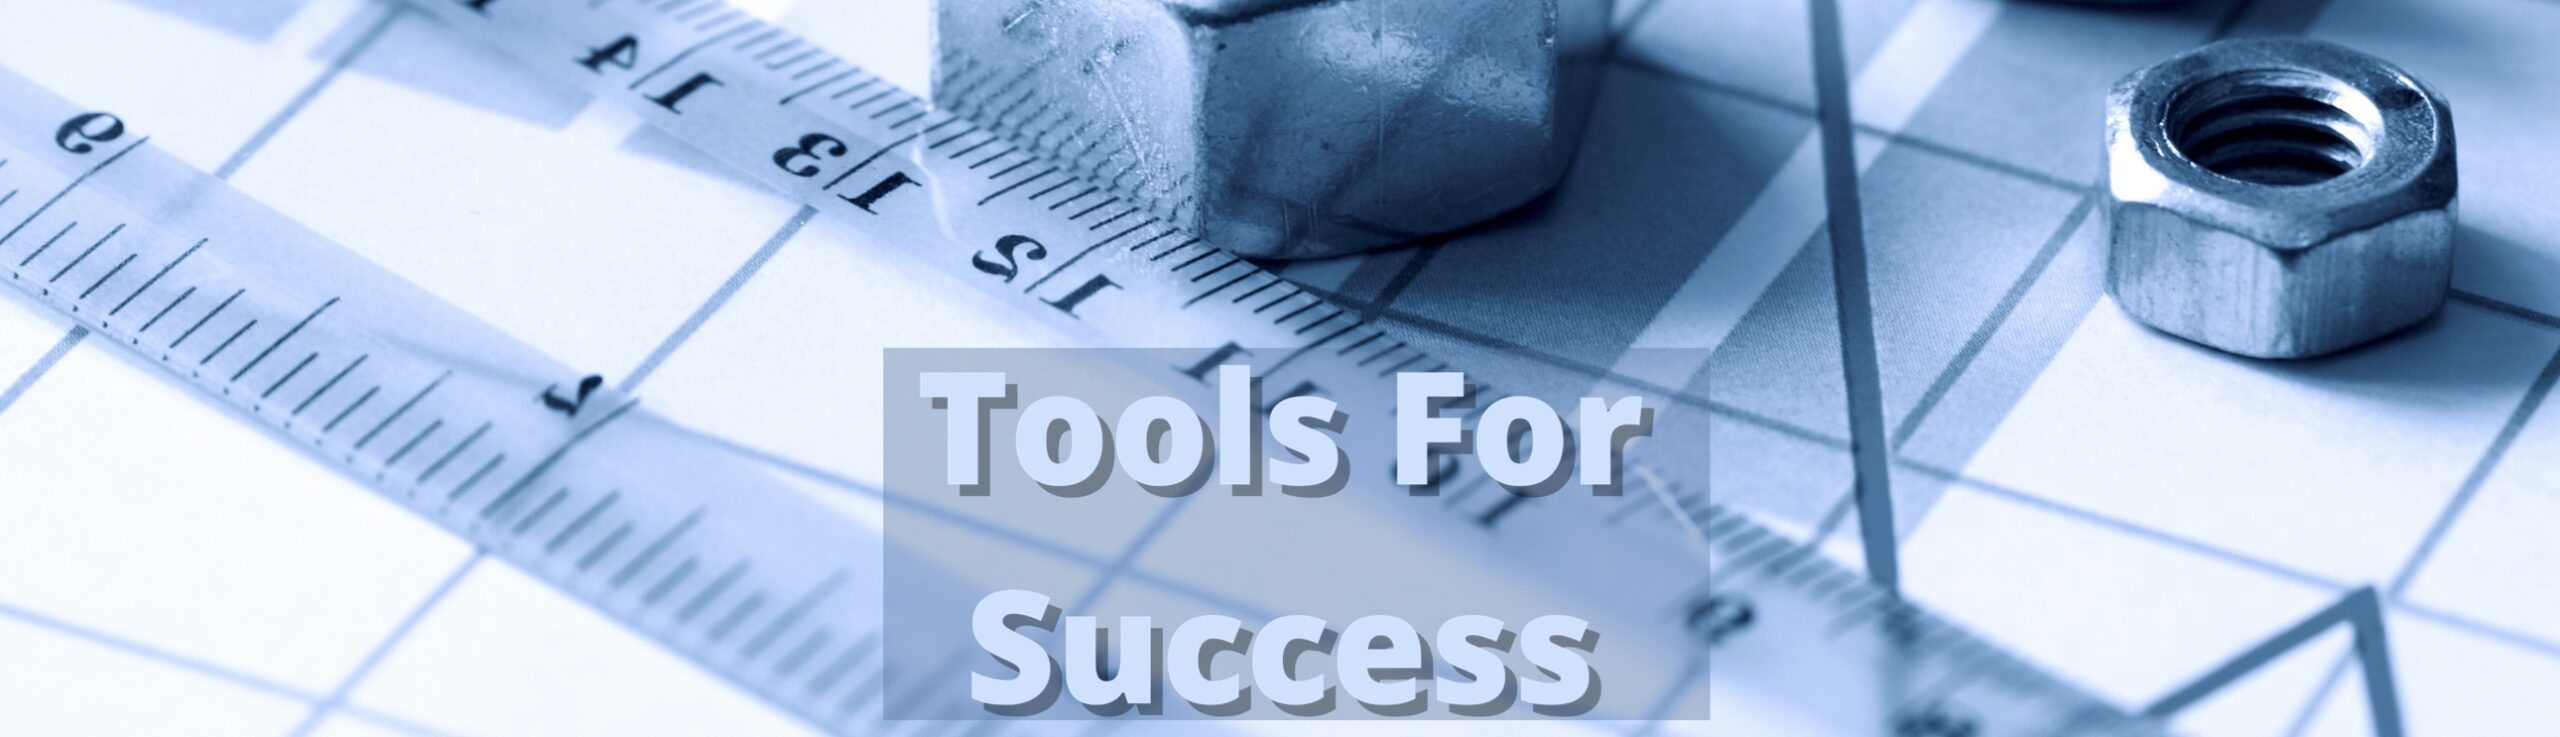 Tools For Success 1